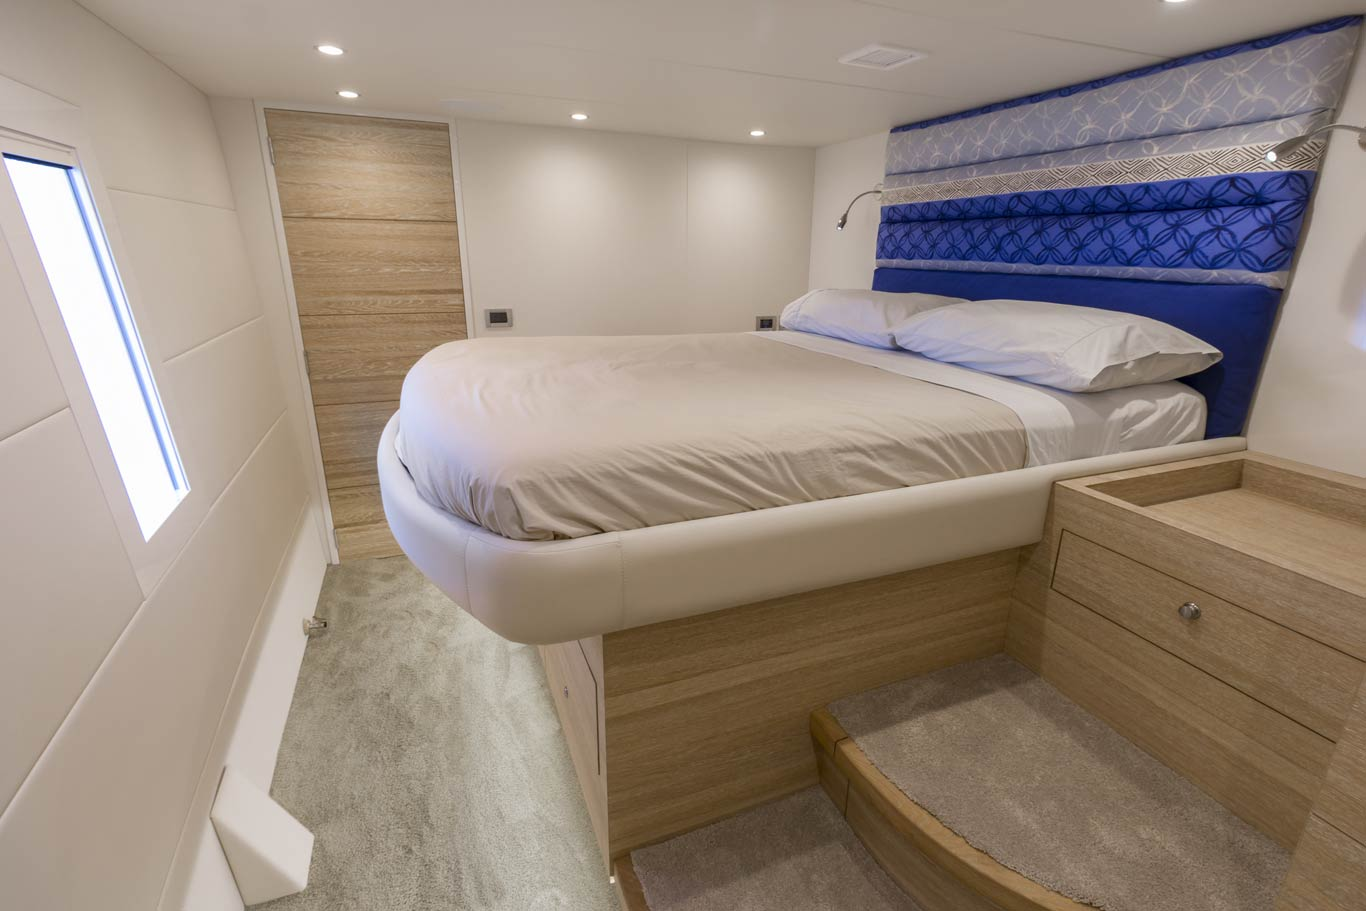 Guest cabins feature a queen size bed, audio system, independent air conditioning and dimmable LED lighting